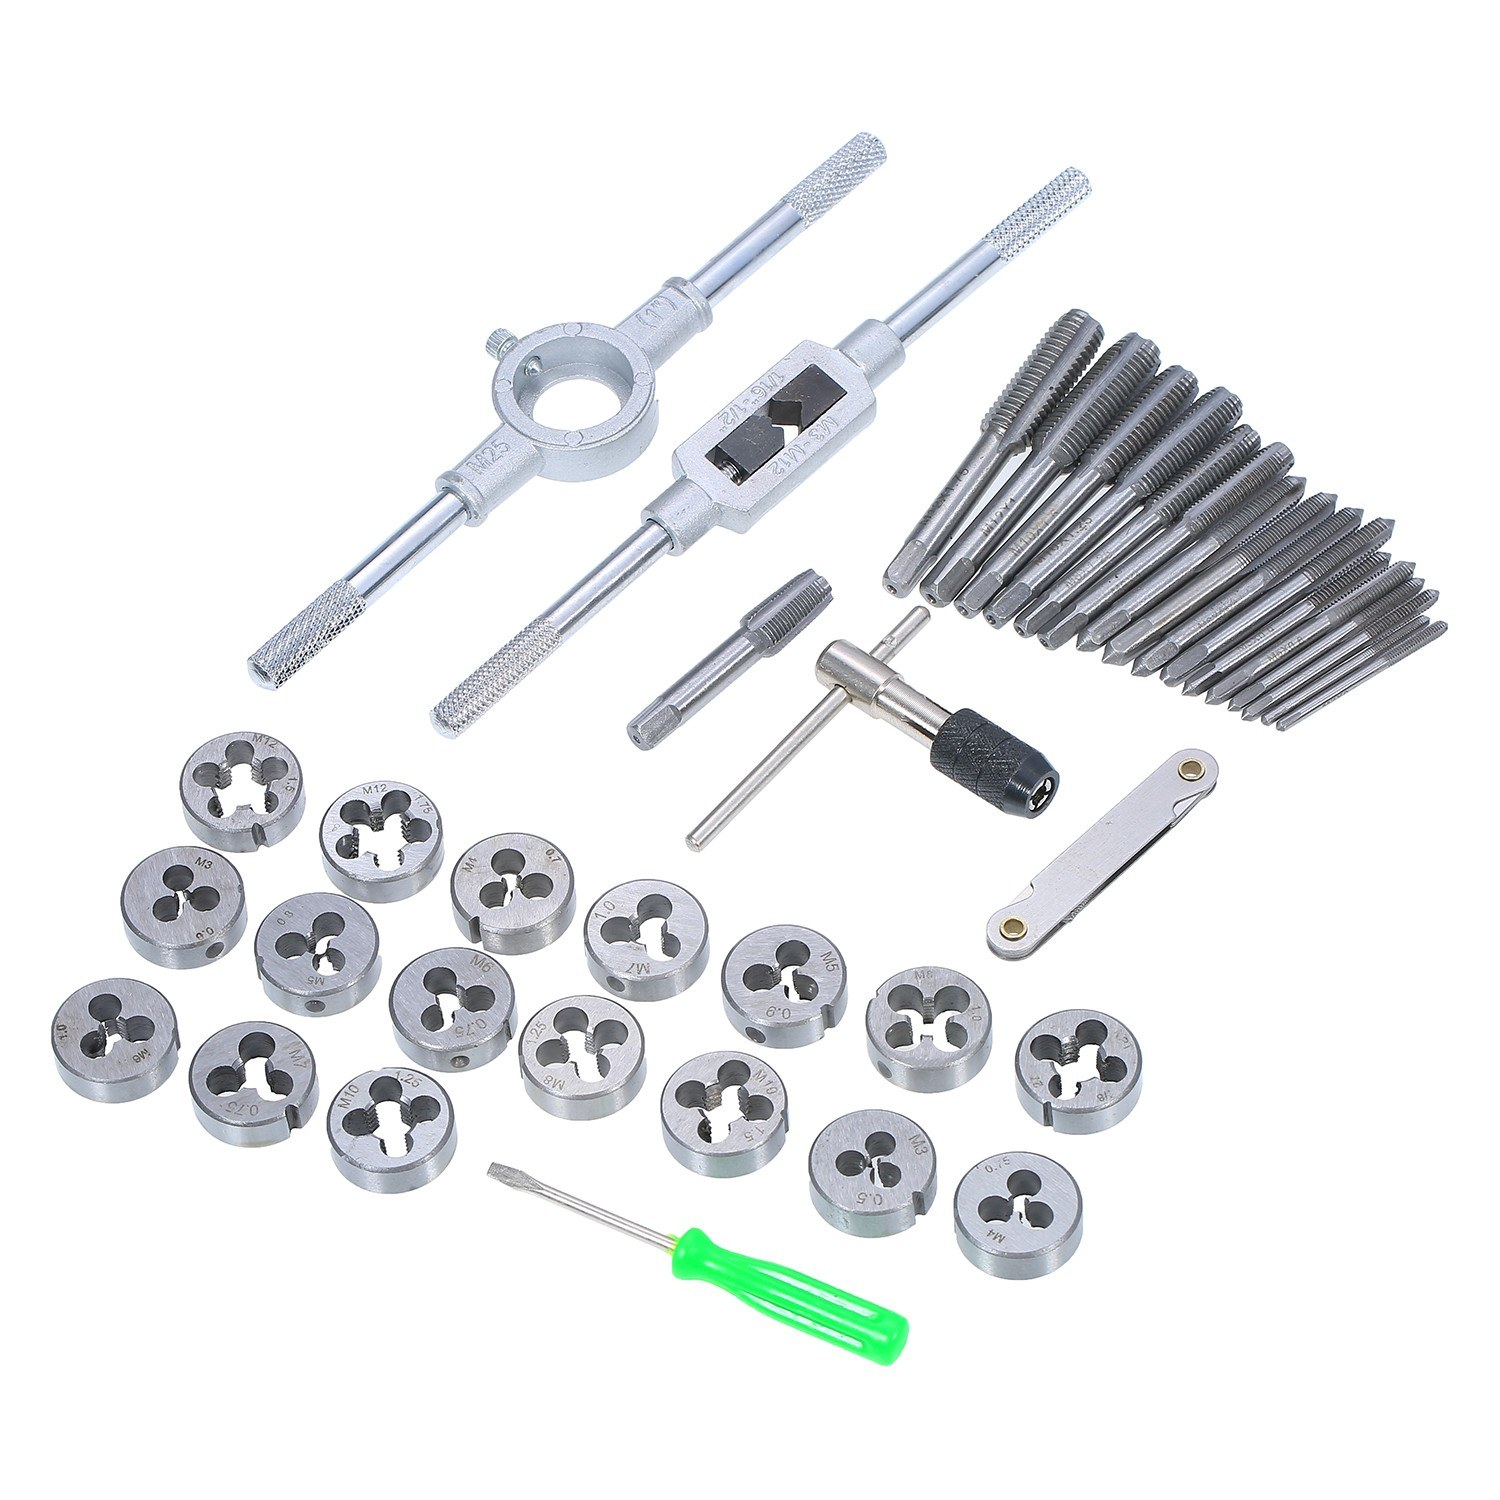 40pcs Tap Die Set M3-M12 Screw Thread Metric Taps Wrench Dies DIY Kit Wrench Screw Threading Hand Tools Tap Wrench Tools